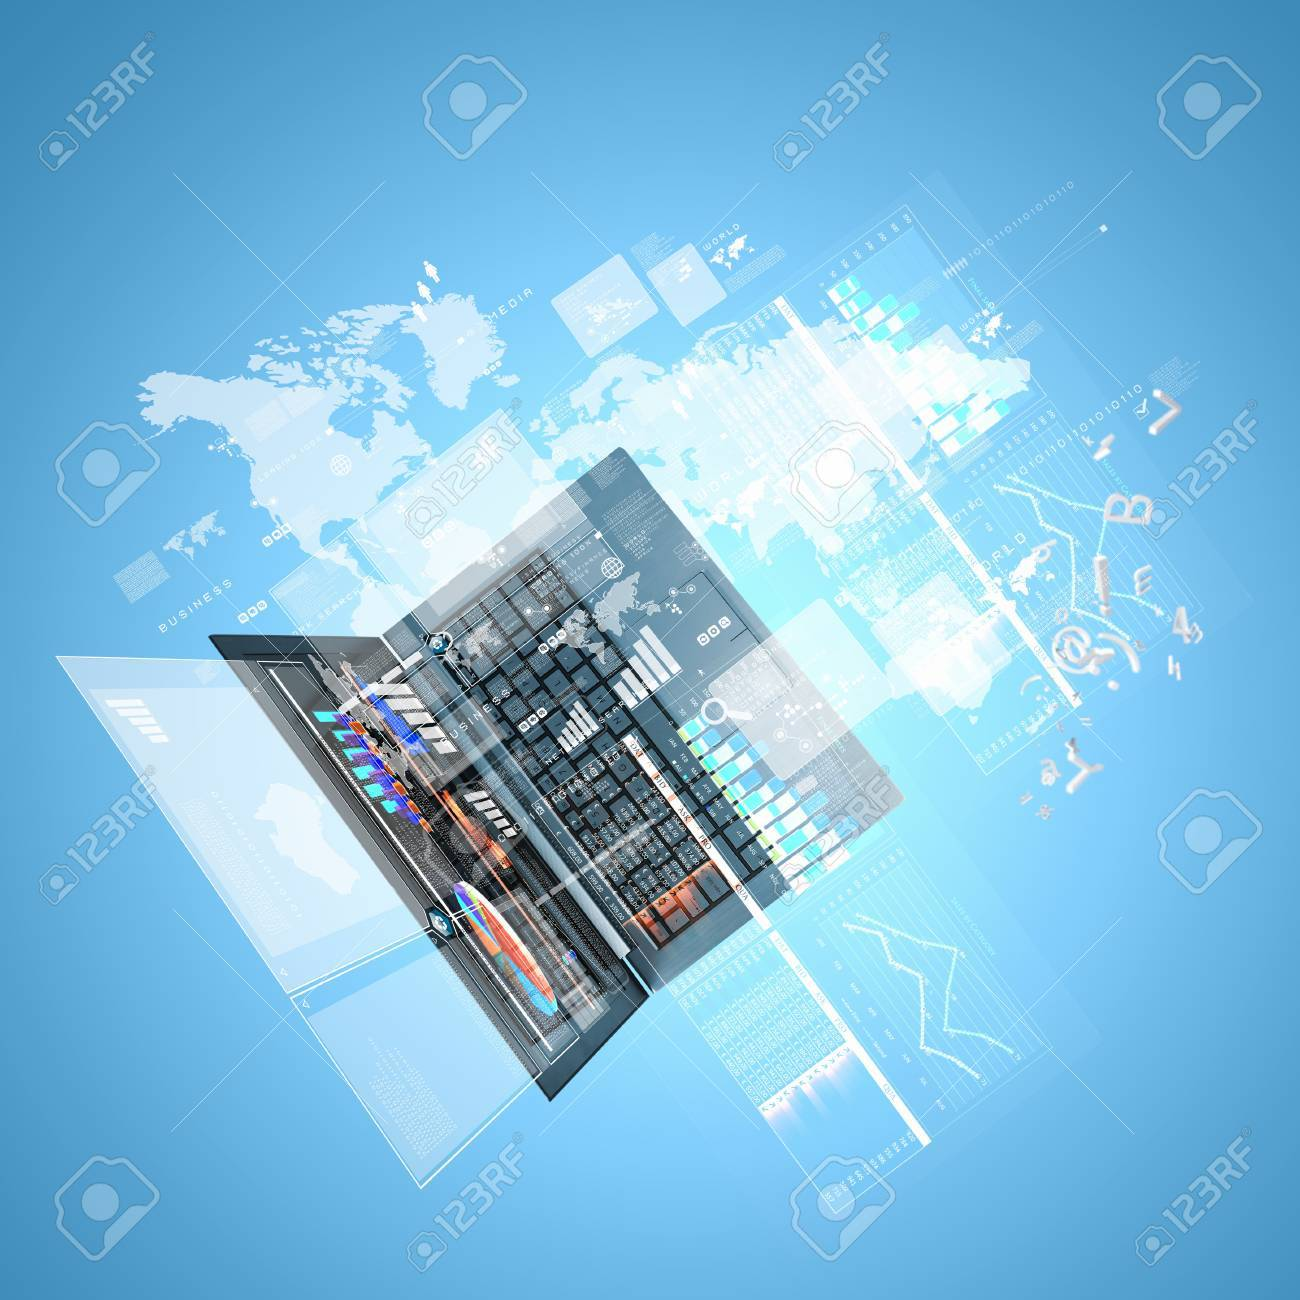 Best Internet Concept of global business from concepts series Stock Photo - 16696849